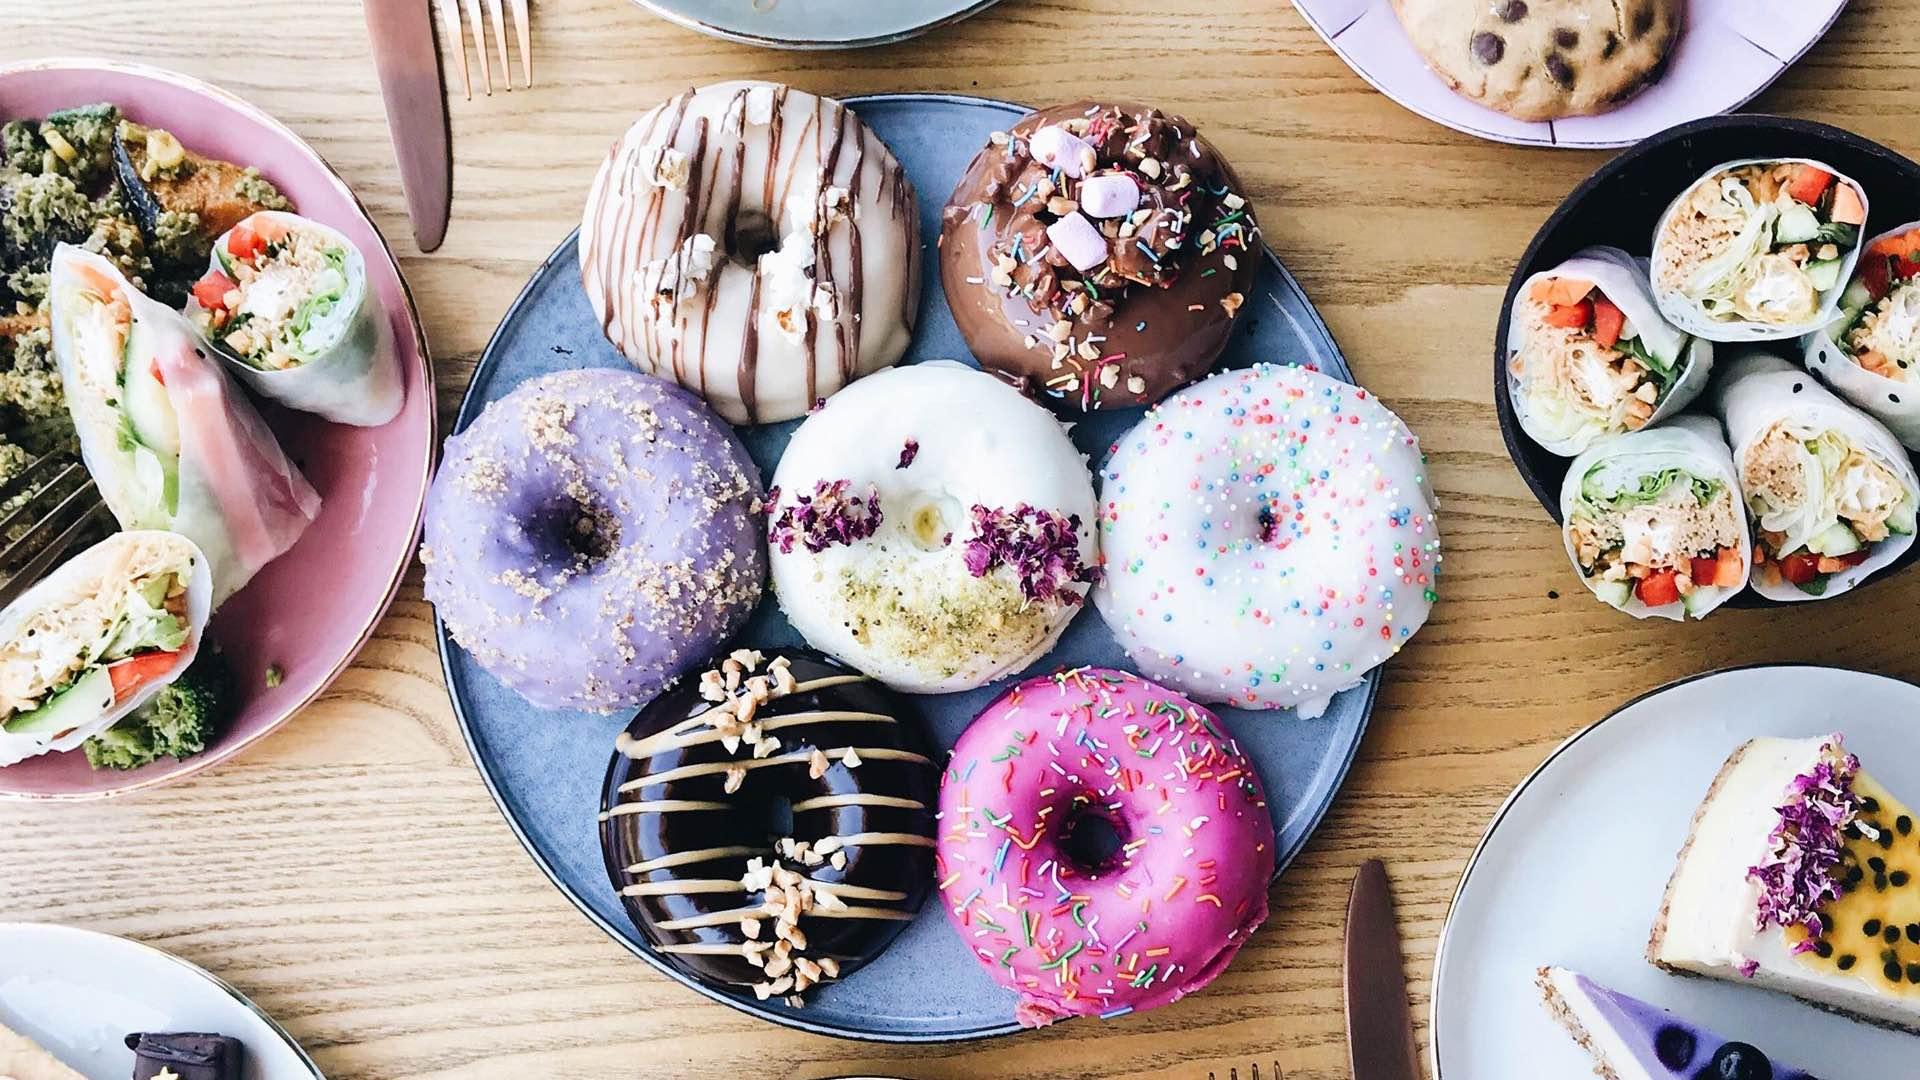 Nutie Is Opening an Entirely Gluten-Free (and Mostly Vegan) Cafe and Bakery in Surry Hills